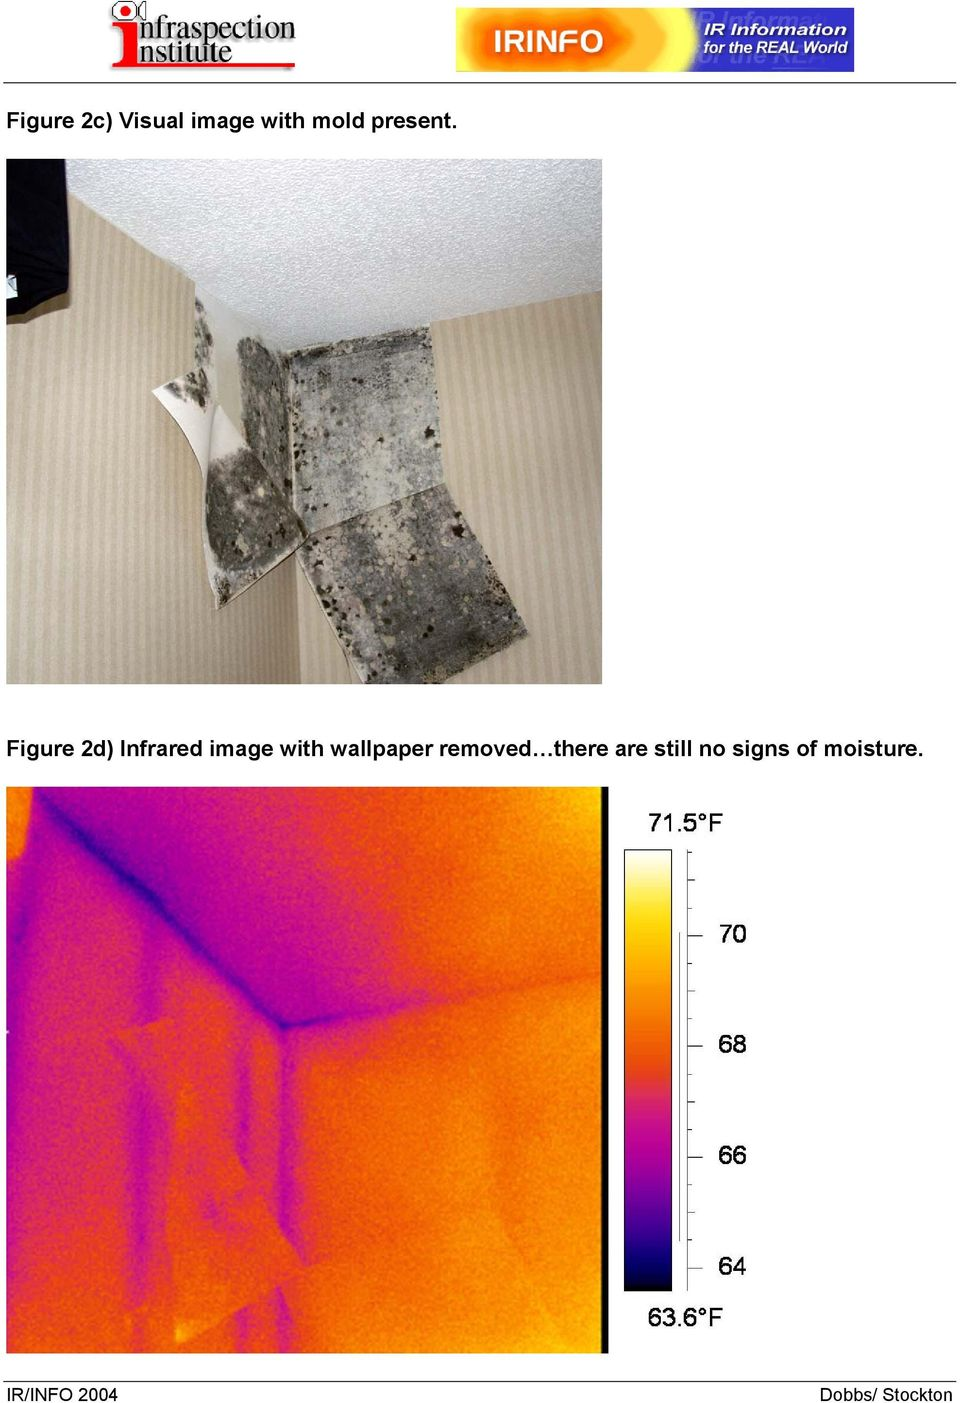 Figure 2d) Infrared image with